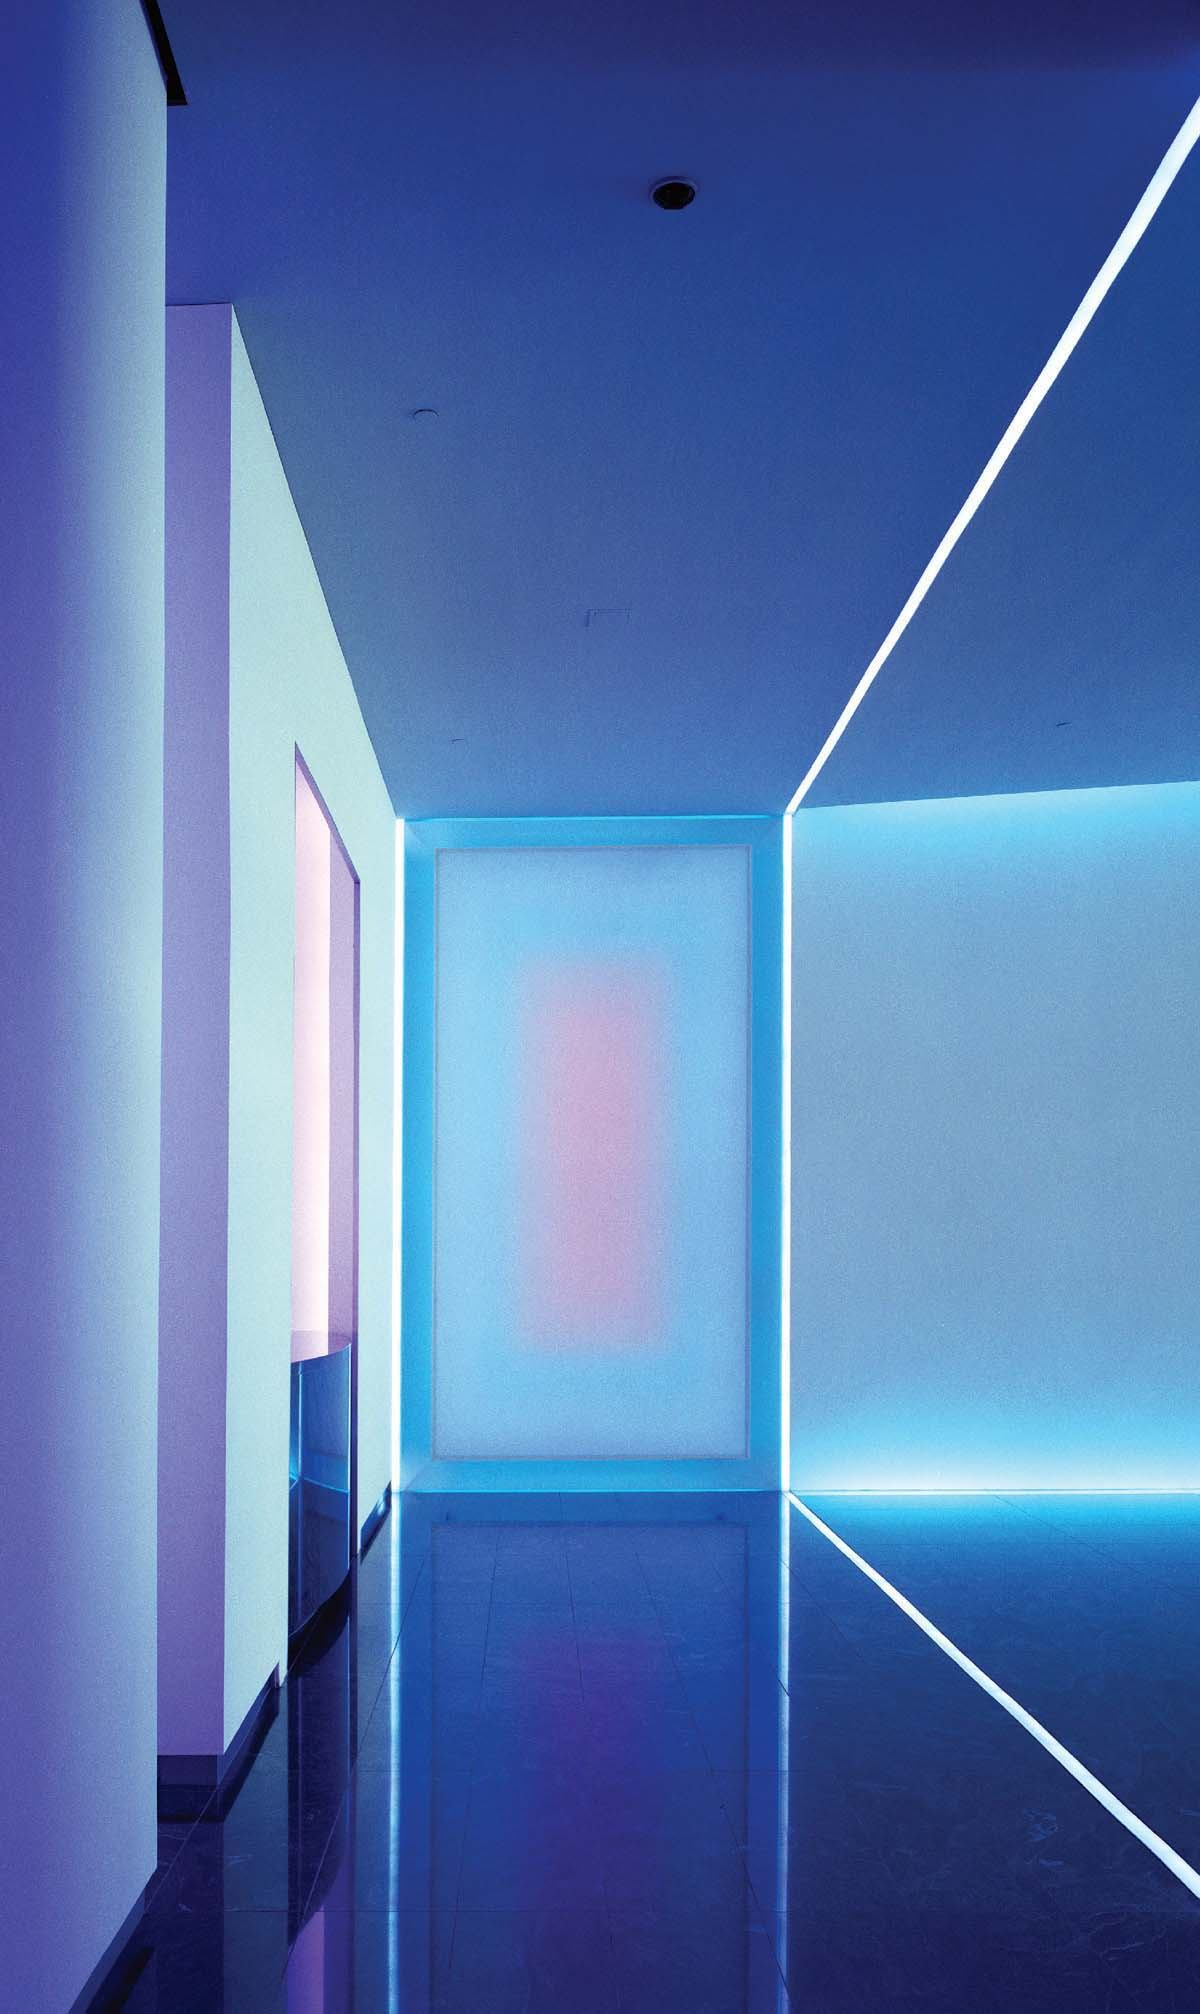 Neon Light Installation